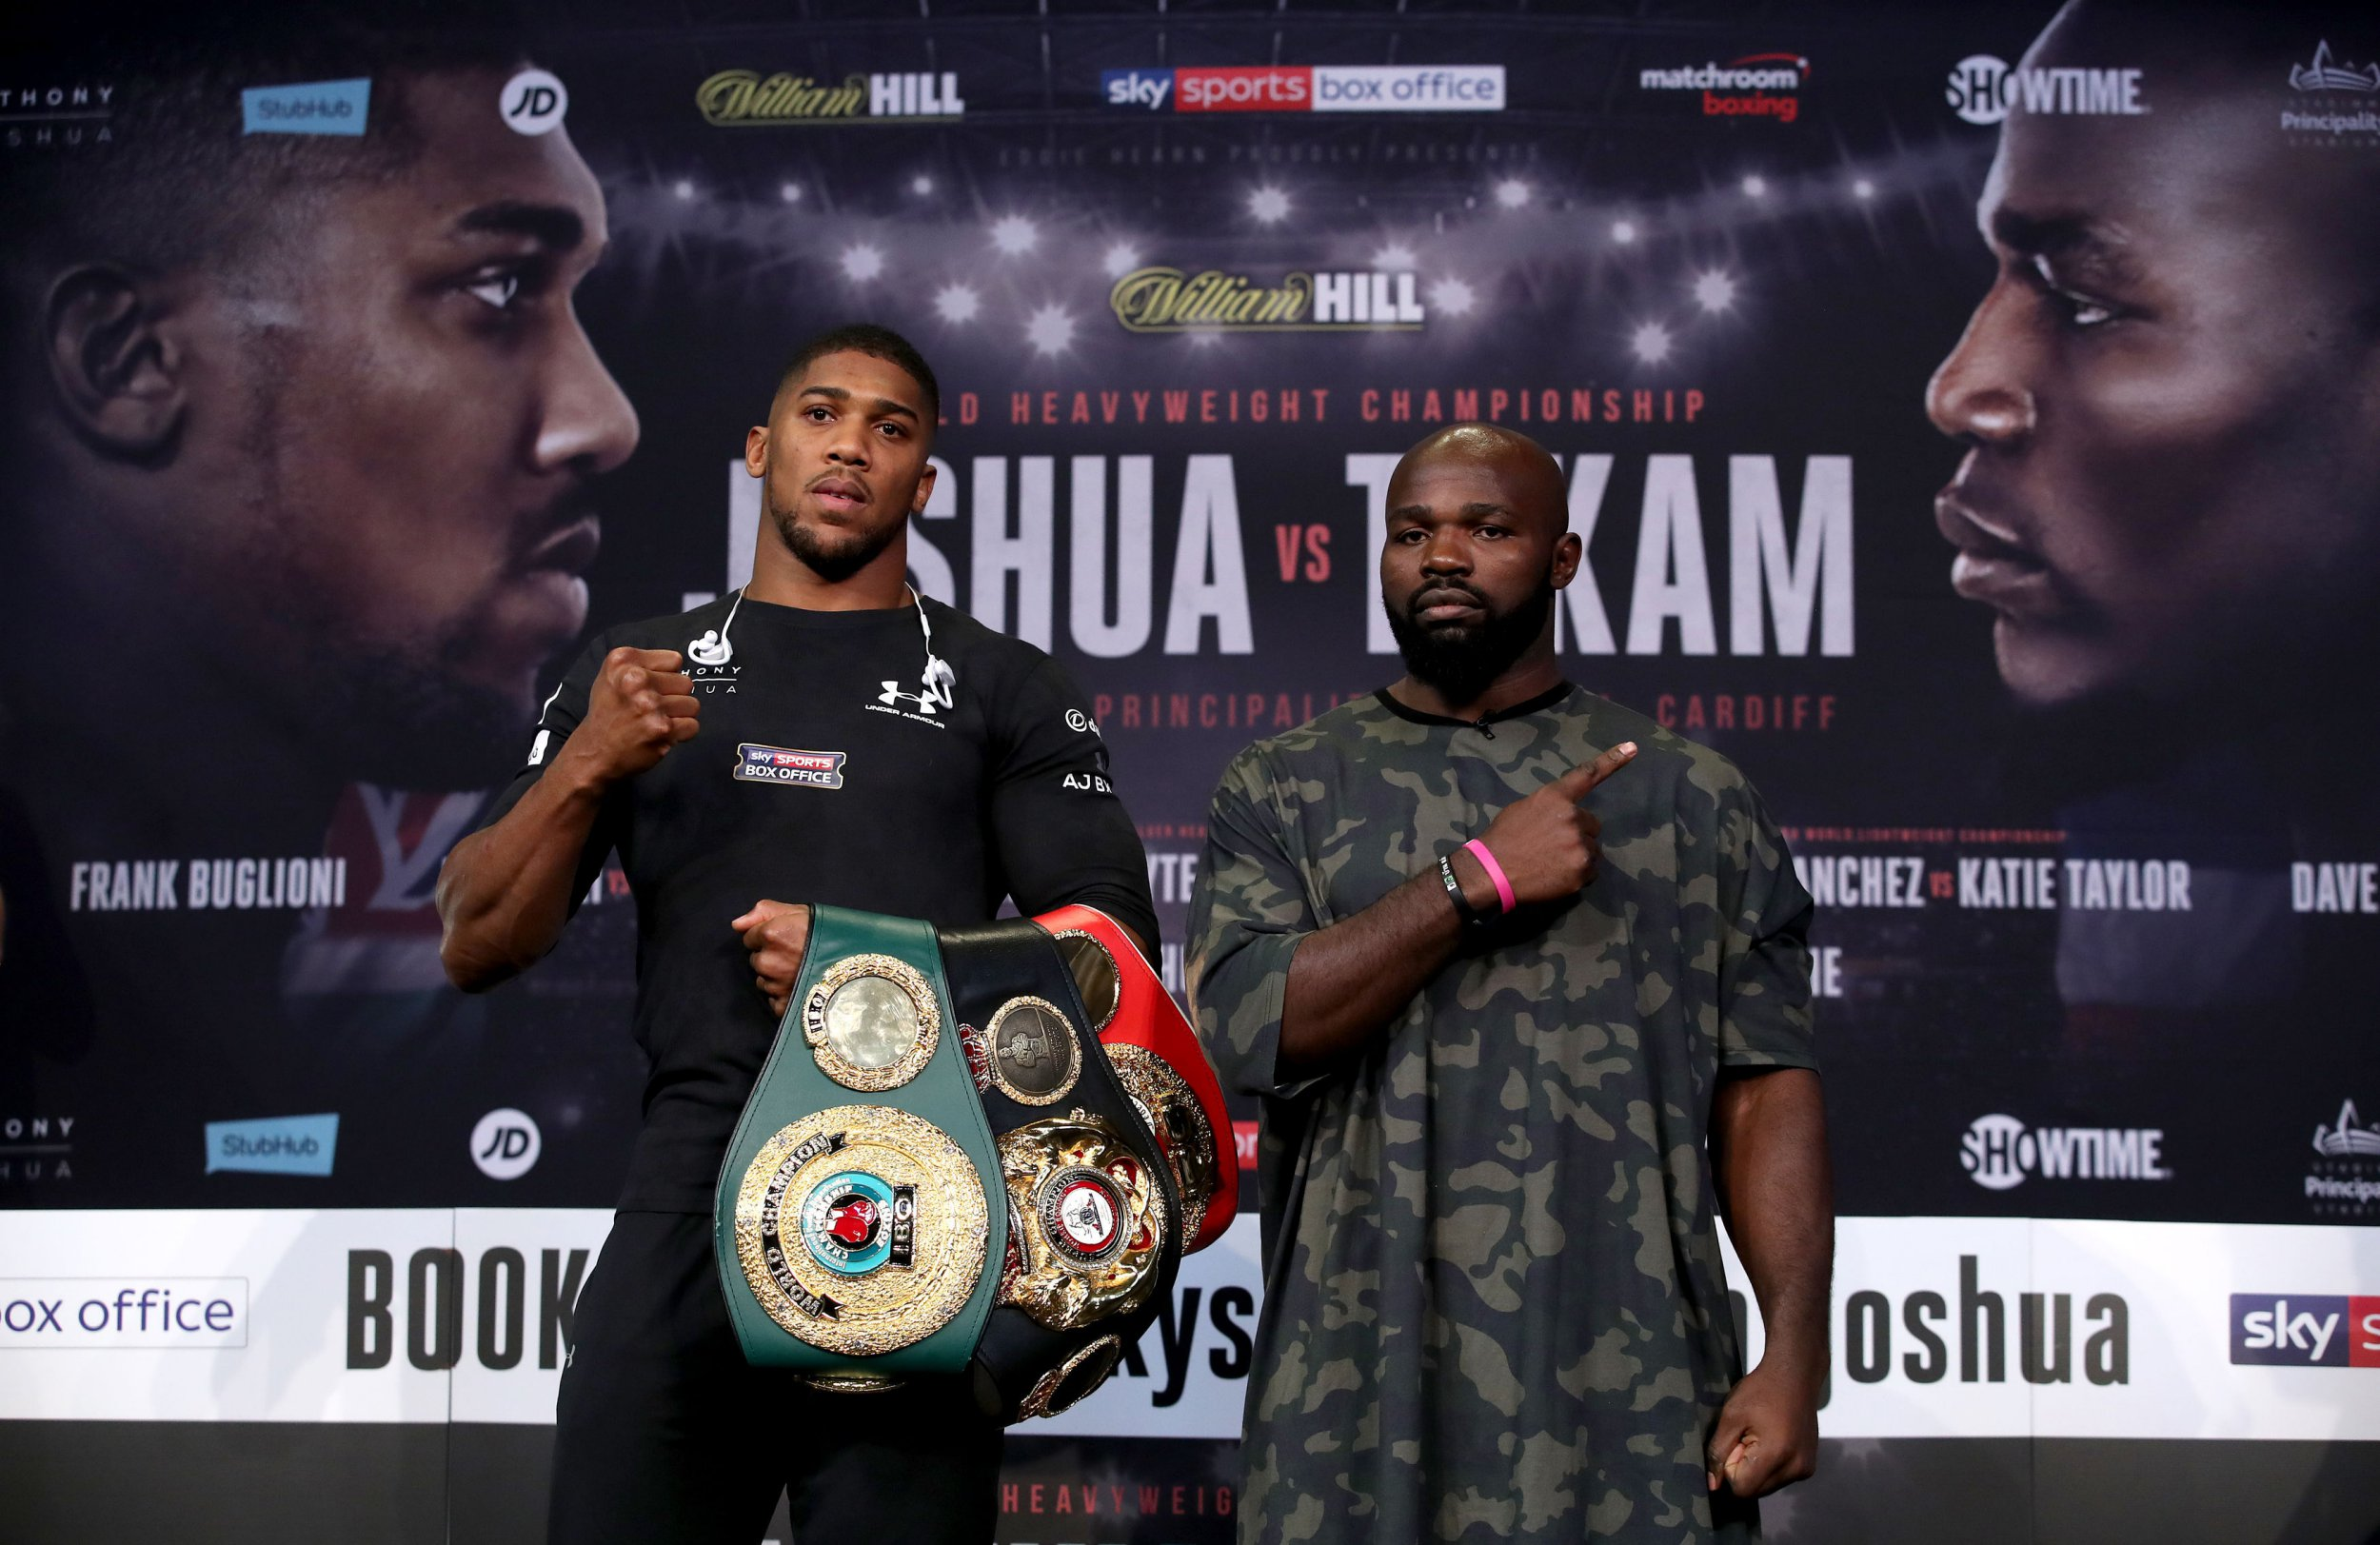 What time is the Anthony Joshua fight and who is on the undercard?